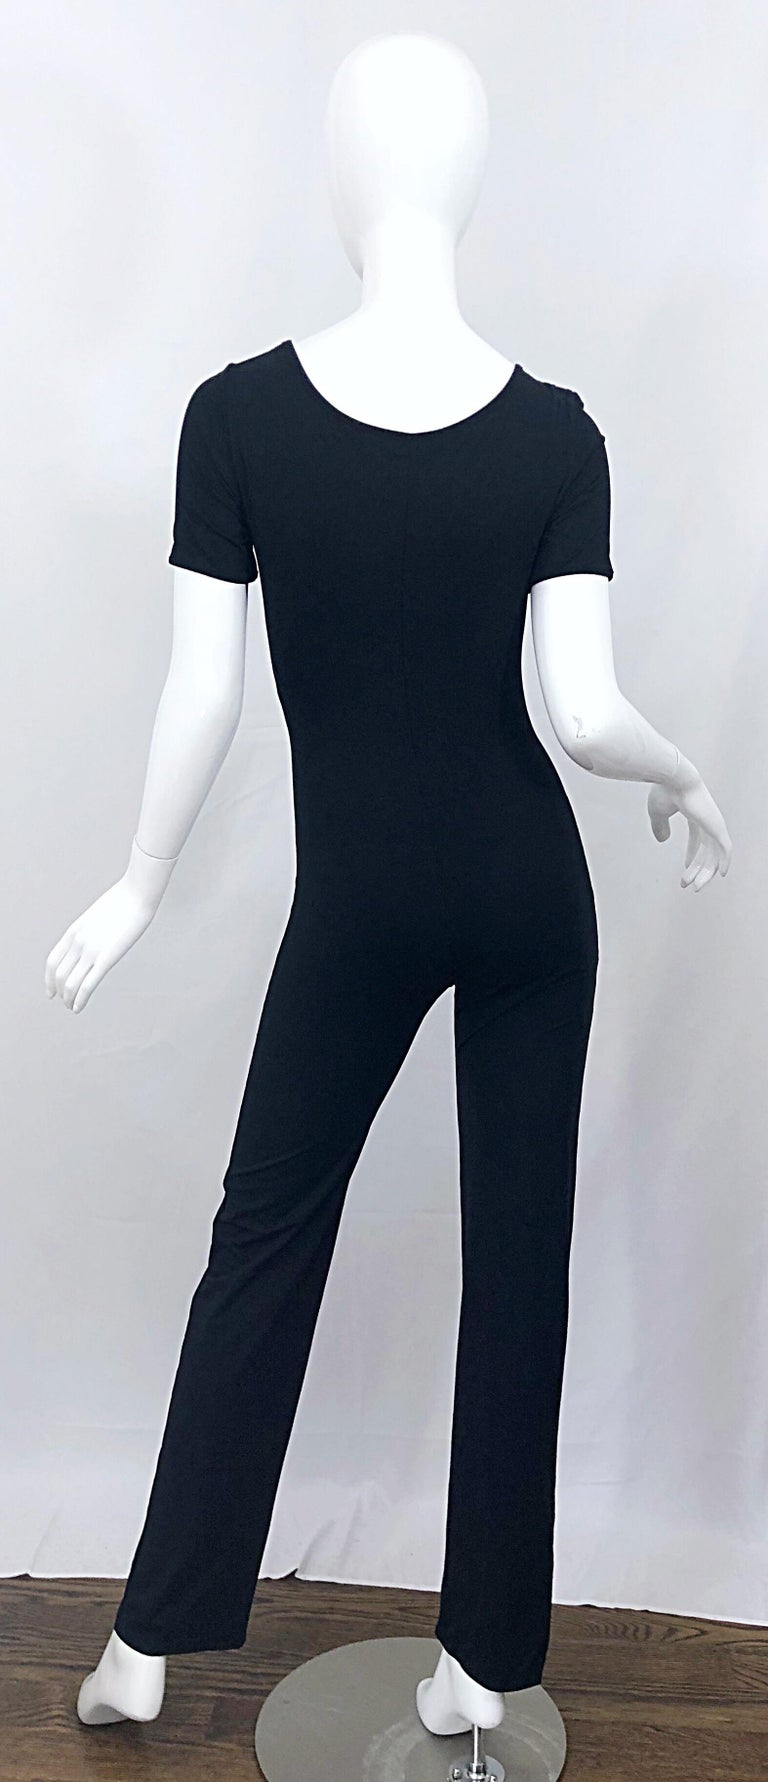 Women's 1990s Dolce & Gabbana Black and White Athletic One Piece Vintage 90s Jumpsuit For Sale